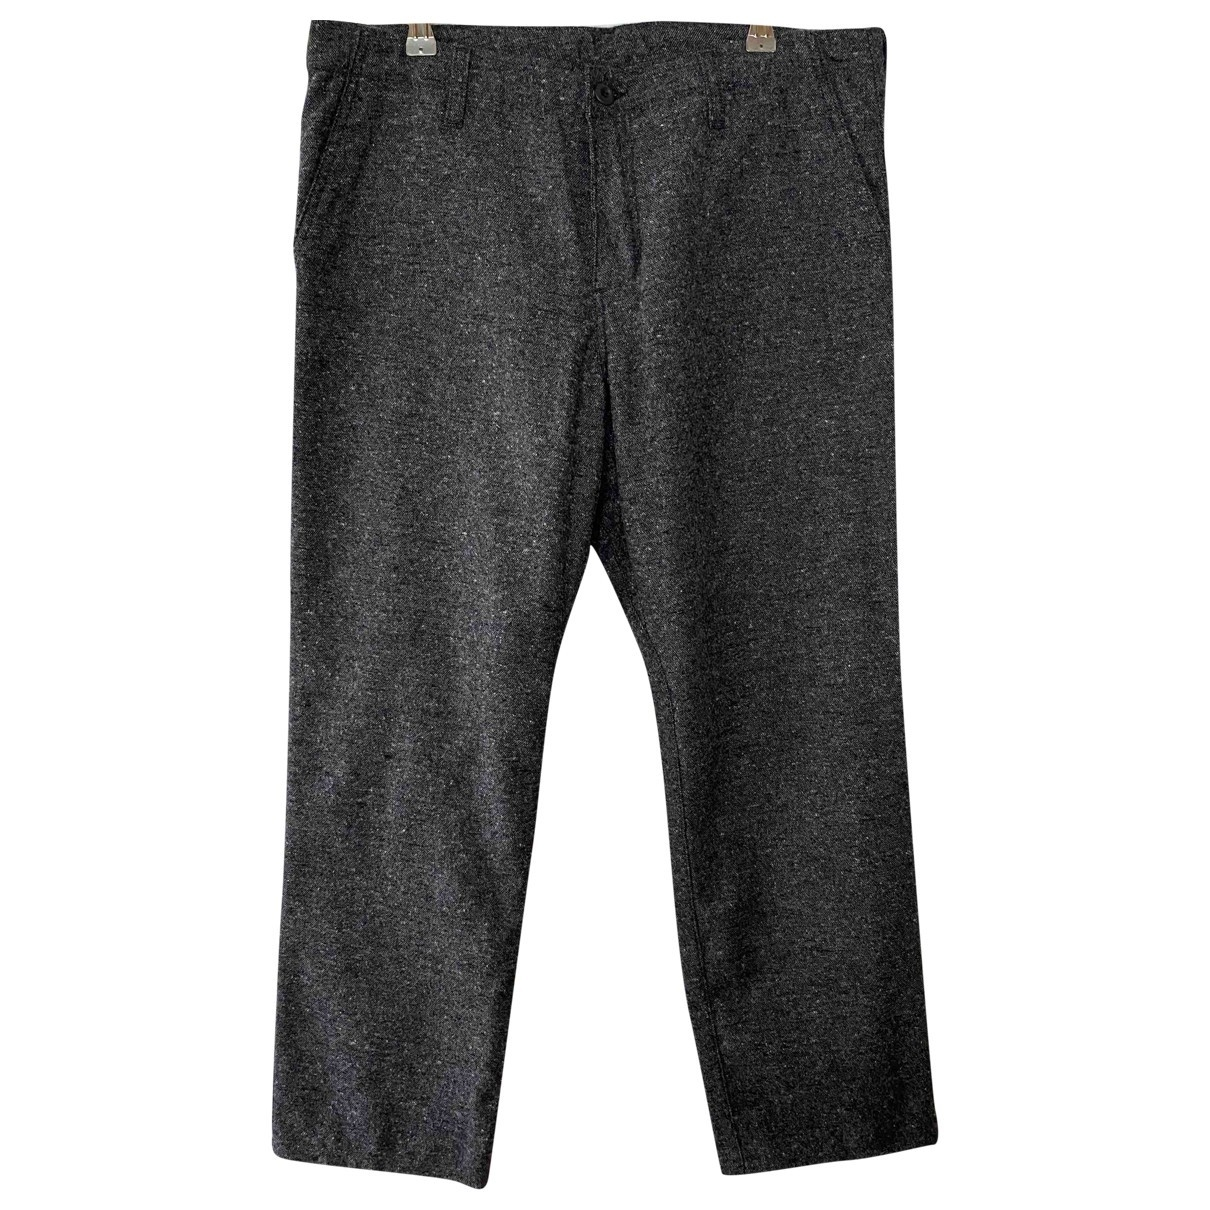 Carhartt Wip \N Anthracite Wool Trousers for Men 34 UK - US